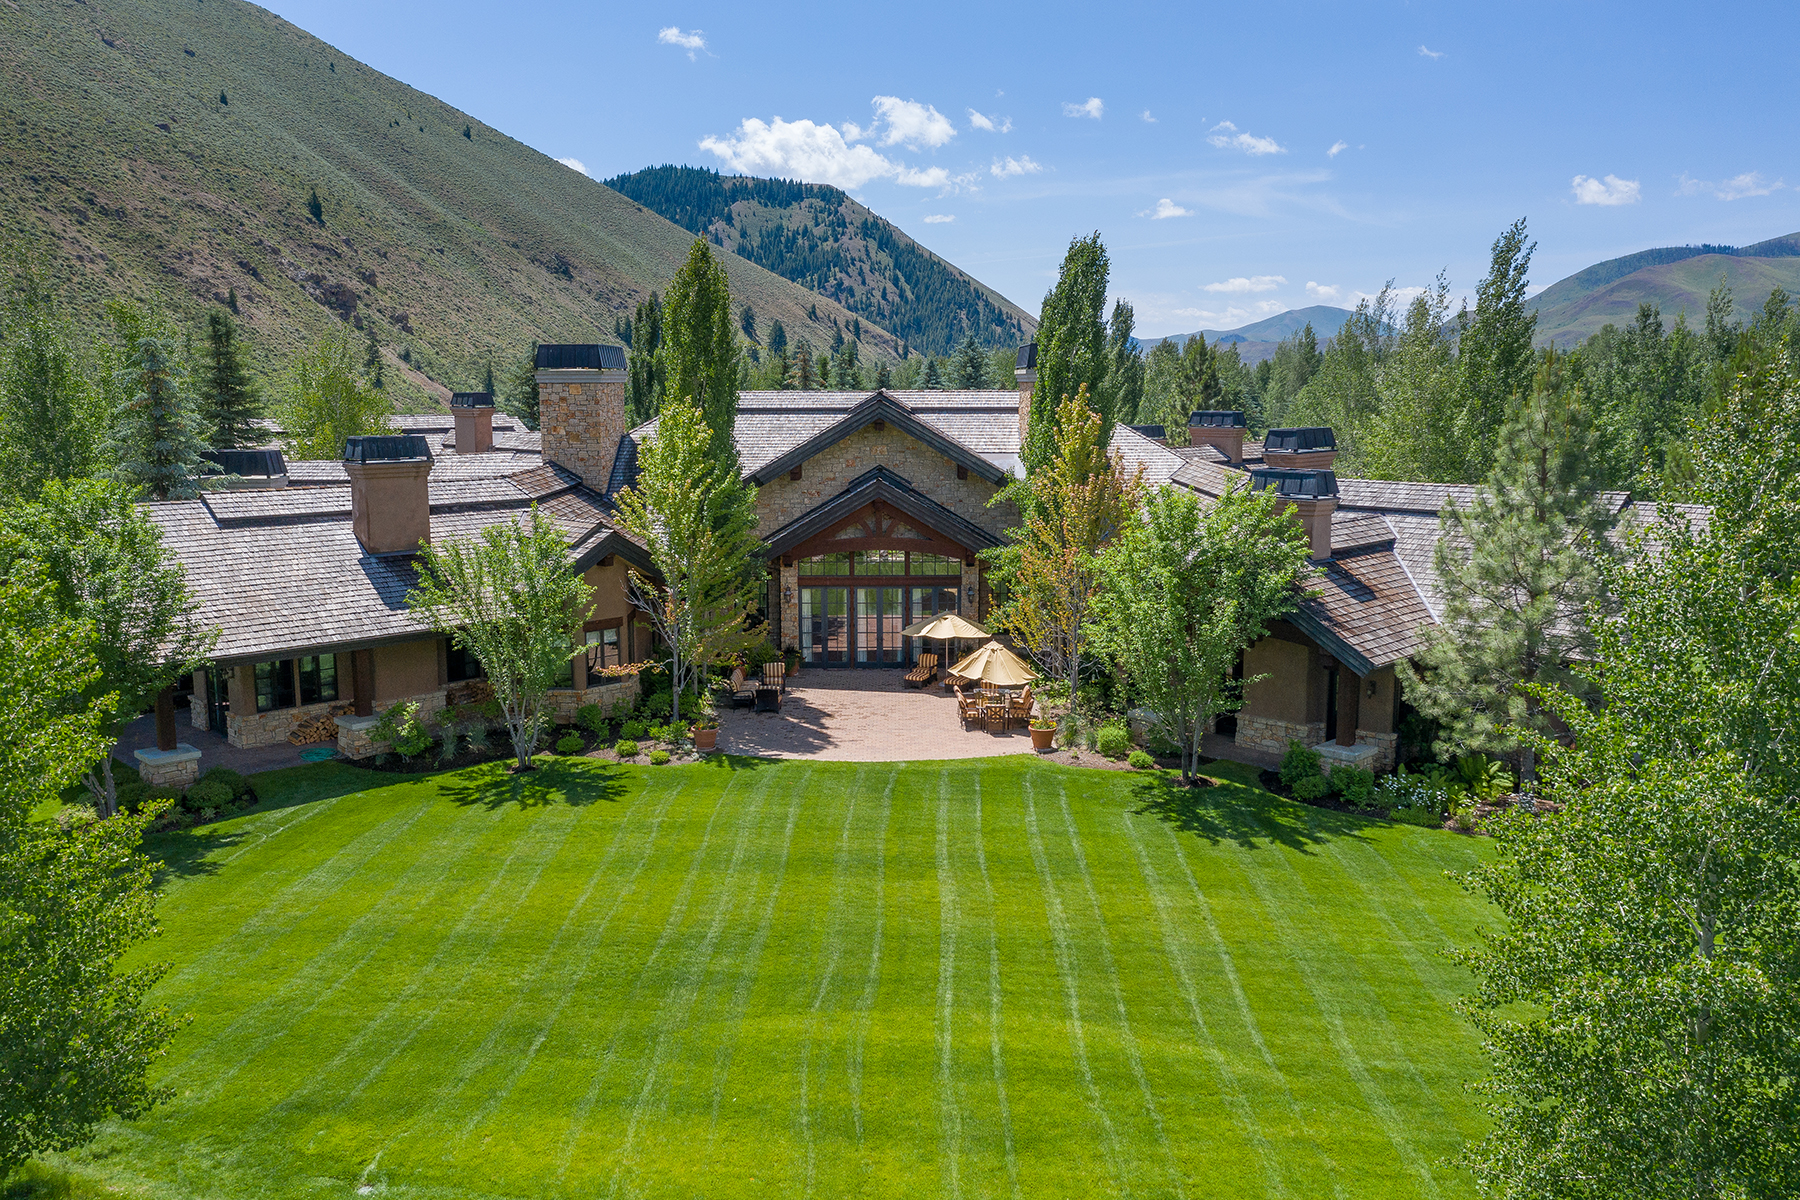 Single Family Homes for Sale at Generational Masterpiece 301 Wall Street Ketchum, Idaho 83340 United States